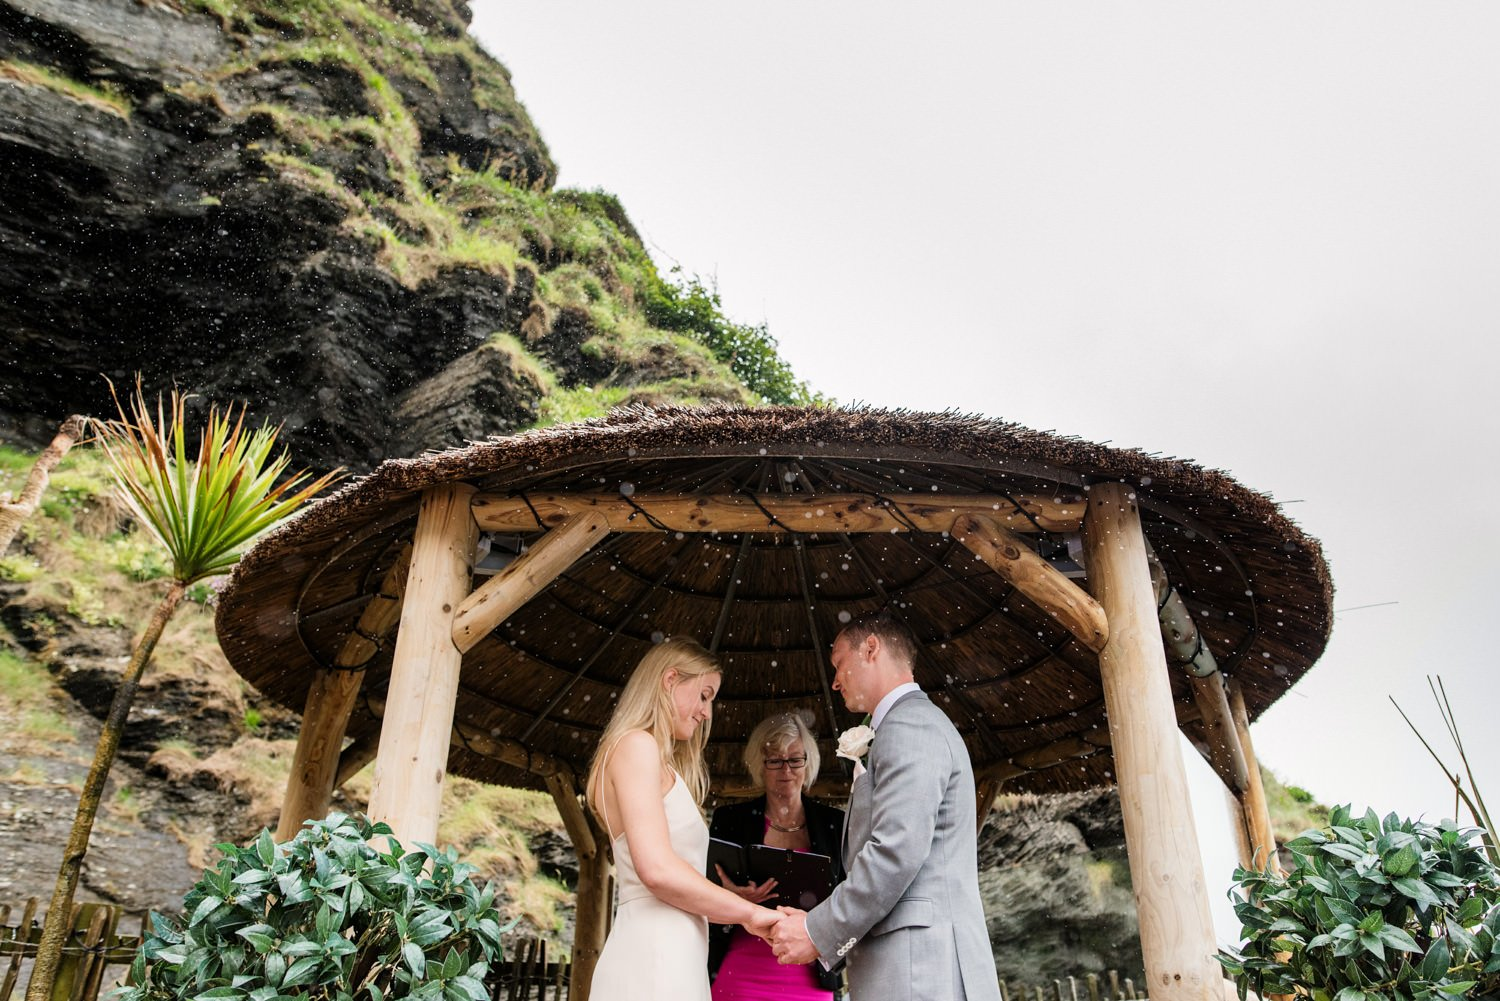 Rainy beach wedding ceremony Devon Babb Photo